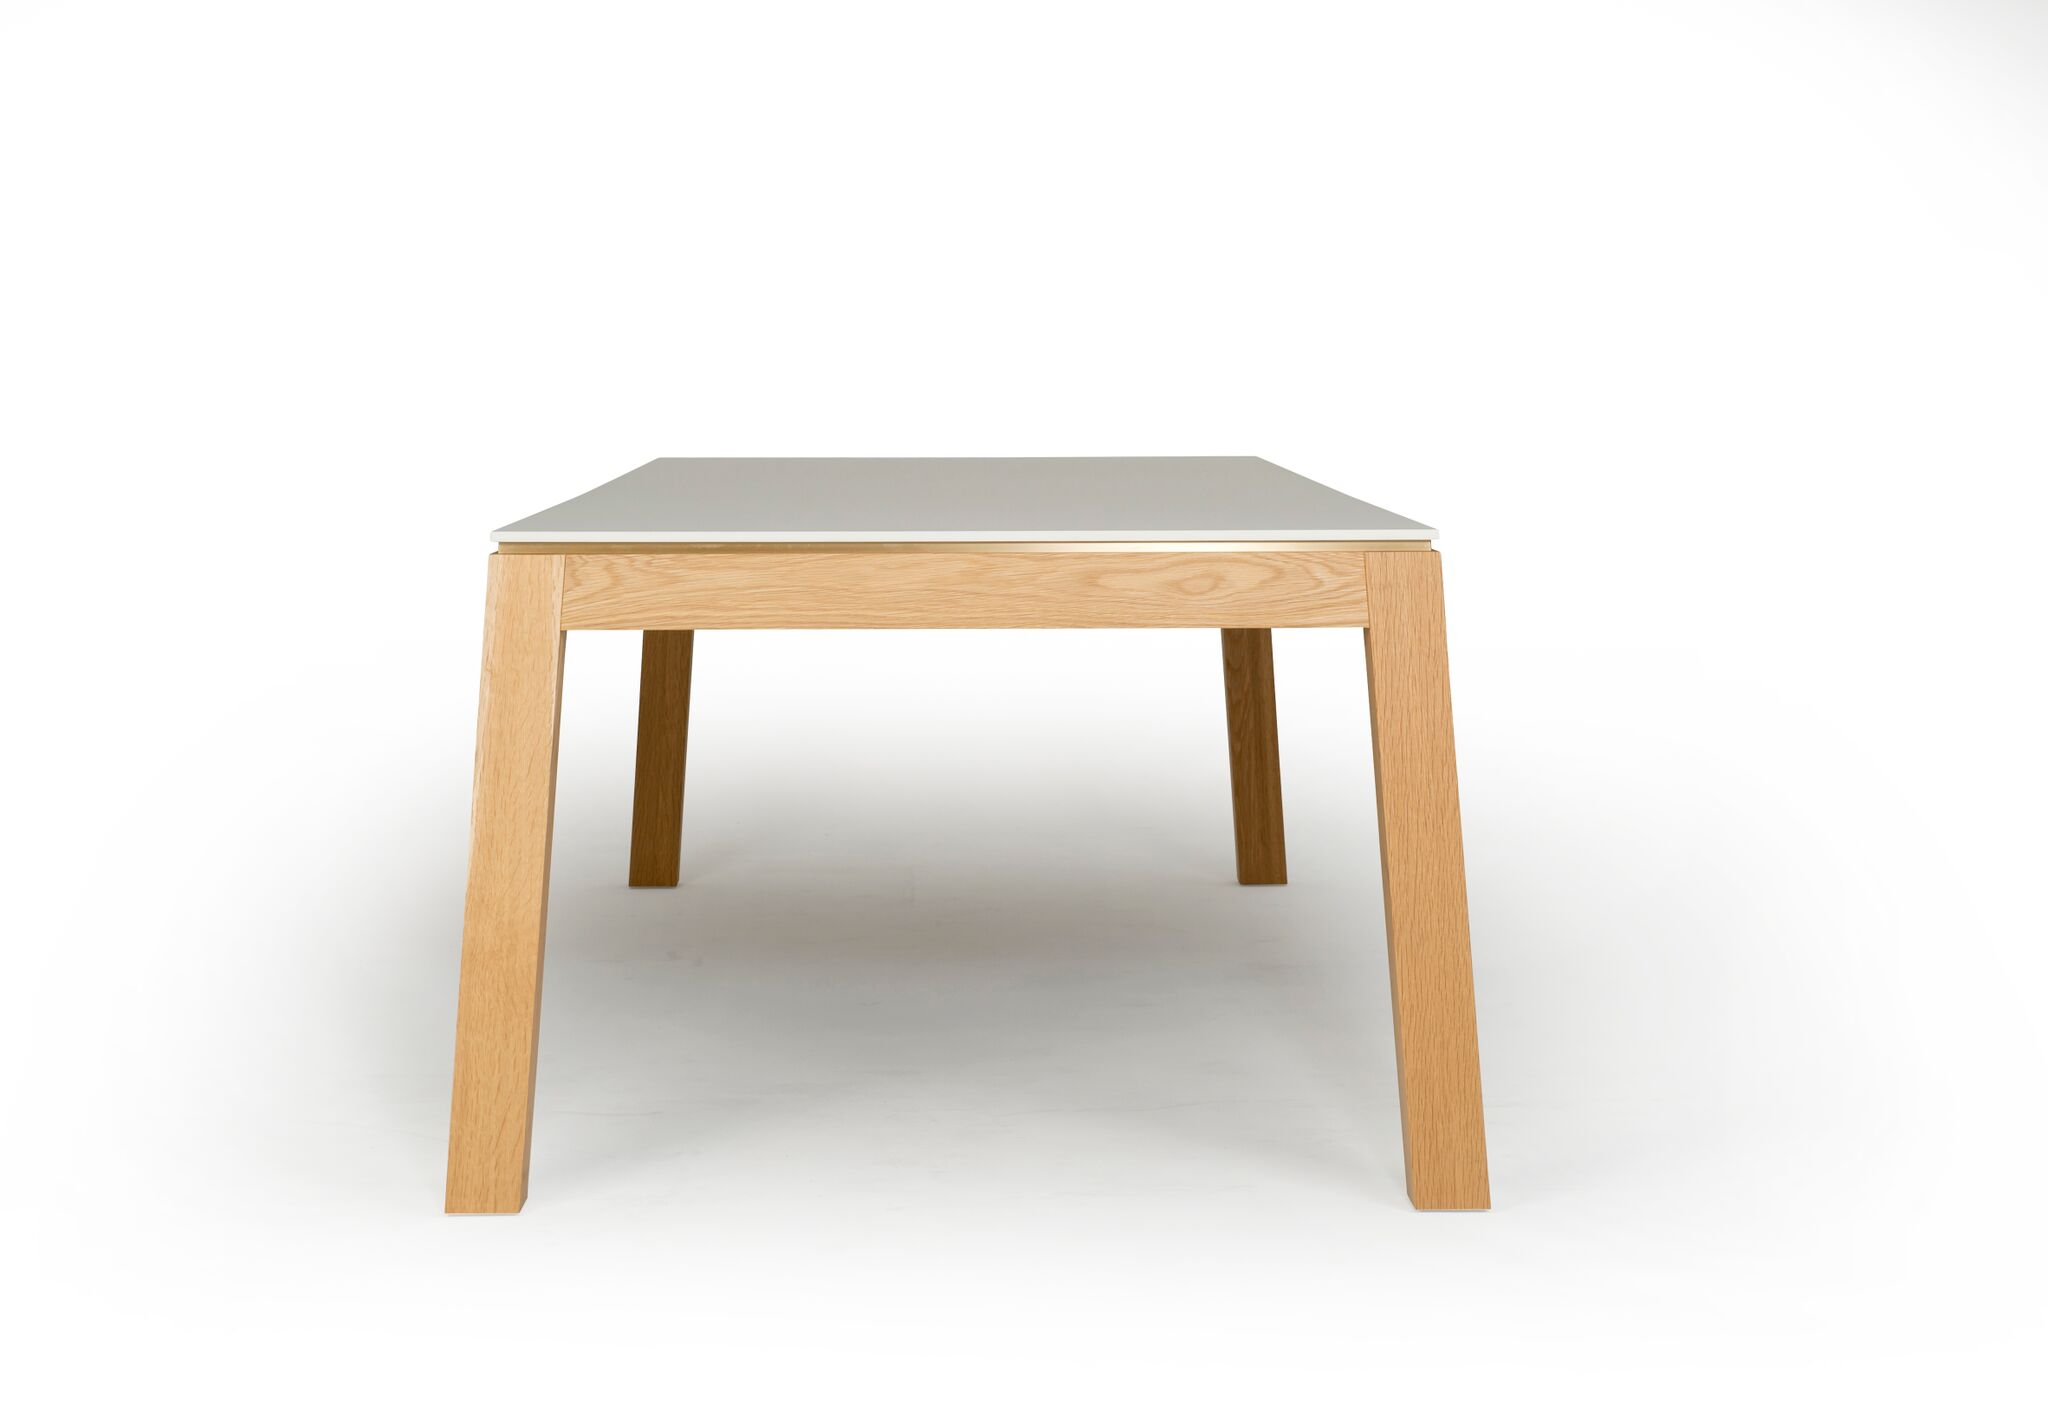 Gallery Of The Mila Table By Fraco Crea Local Australian Furniture Design Melbourne, Vic Image 11